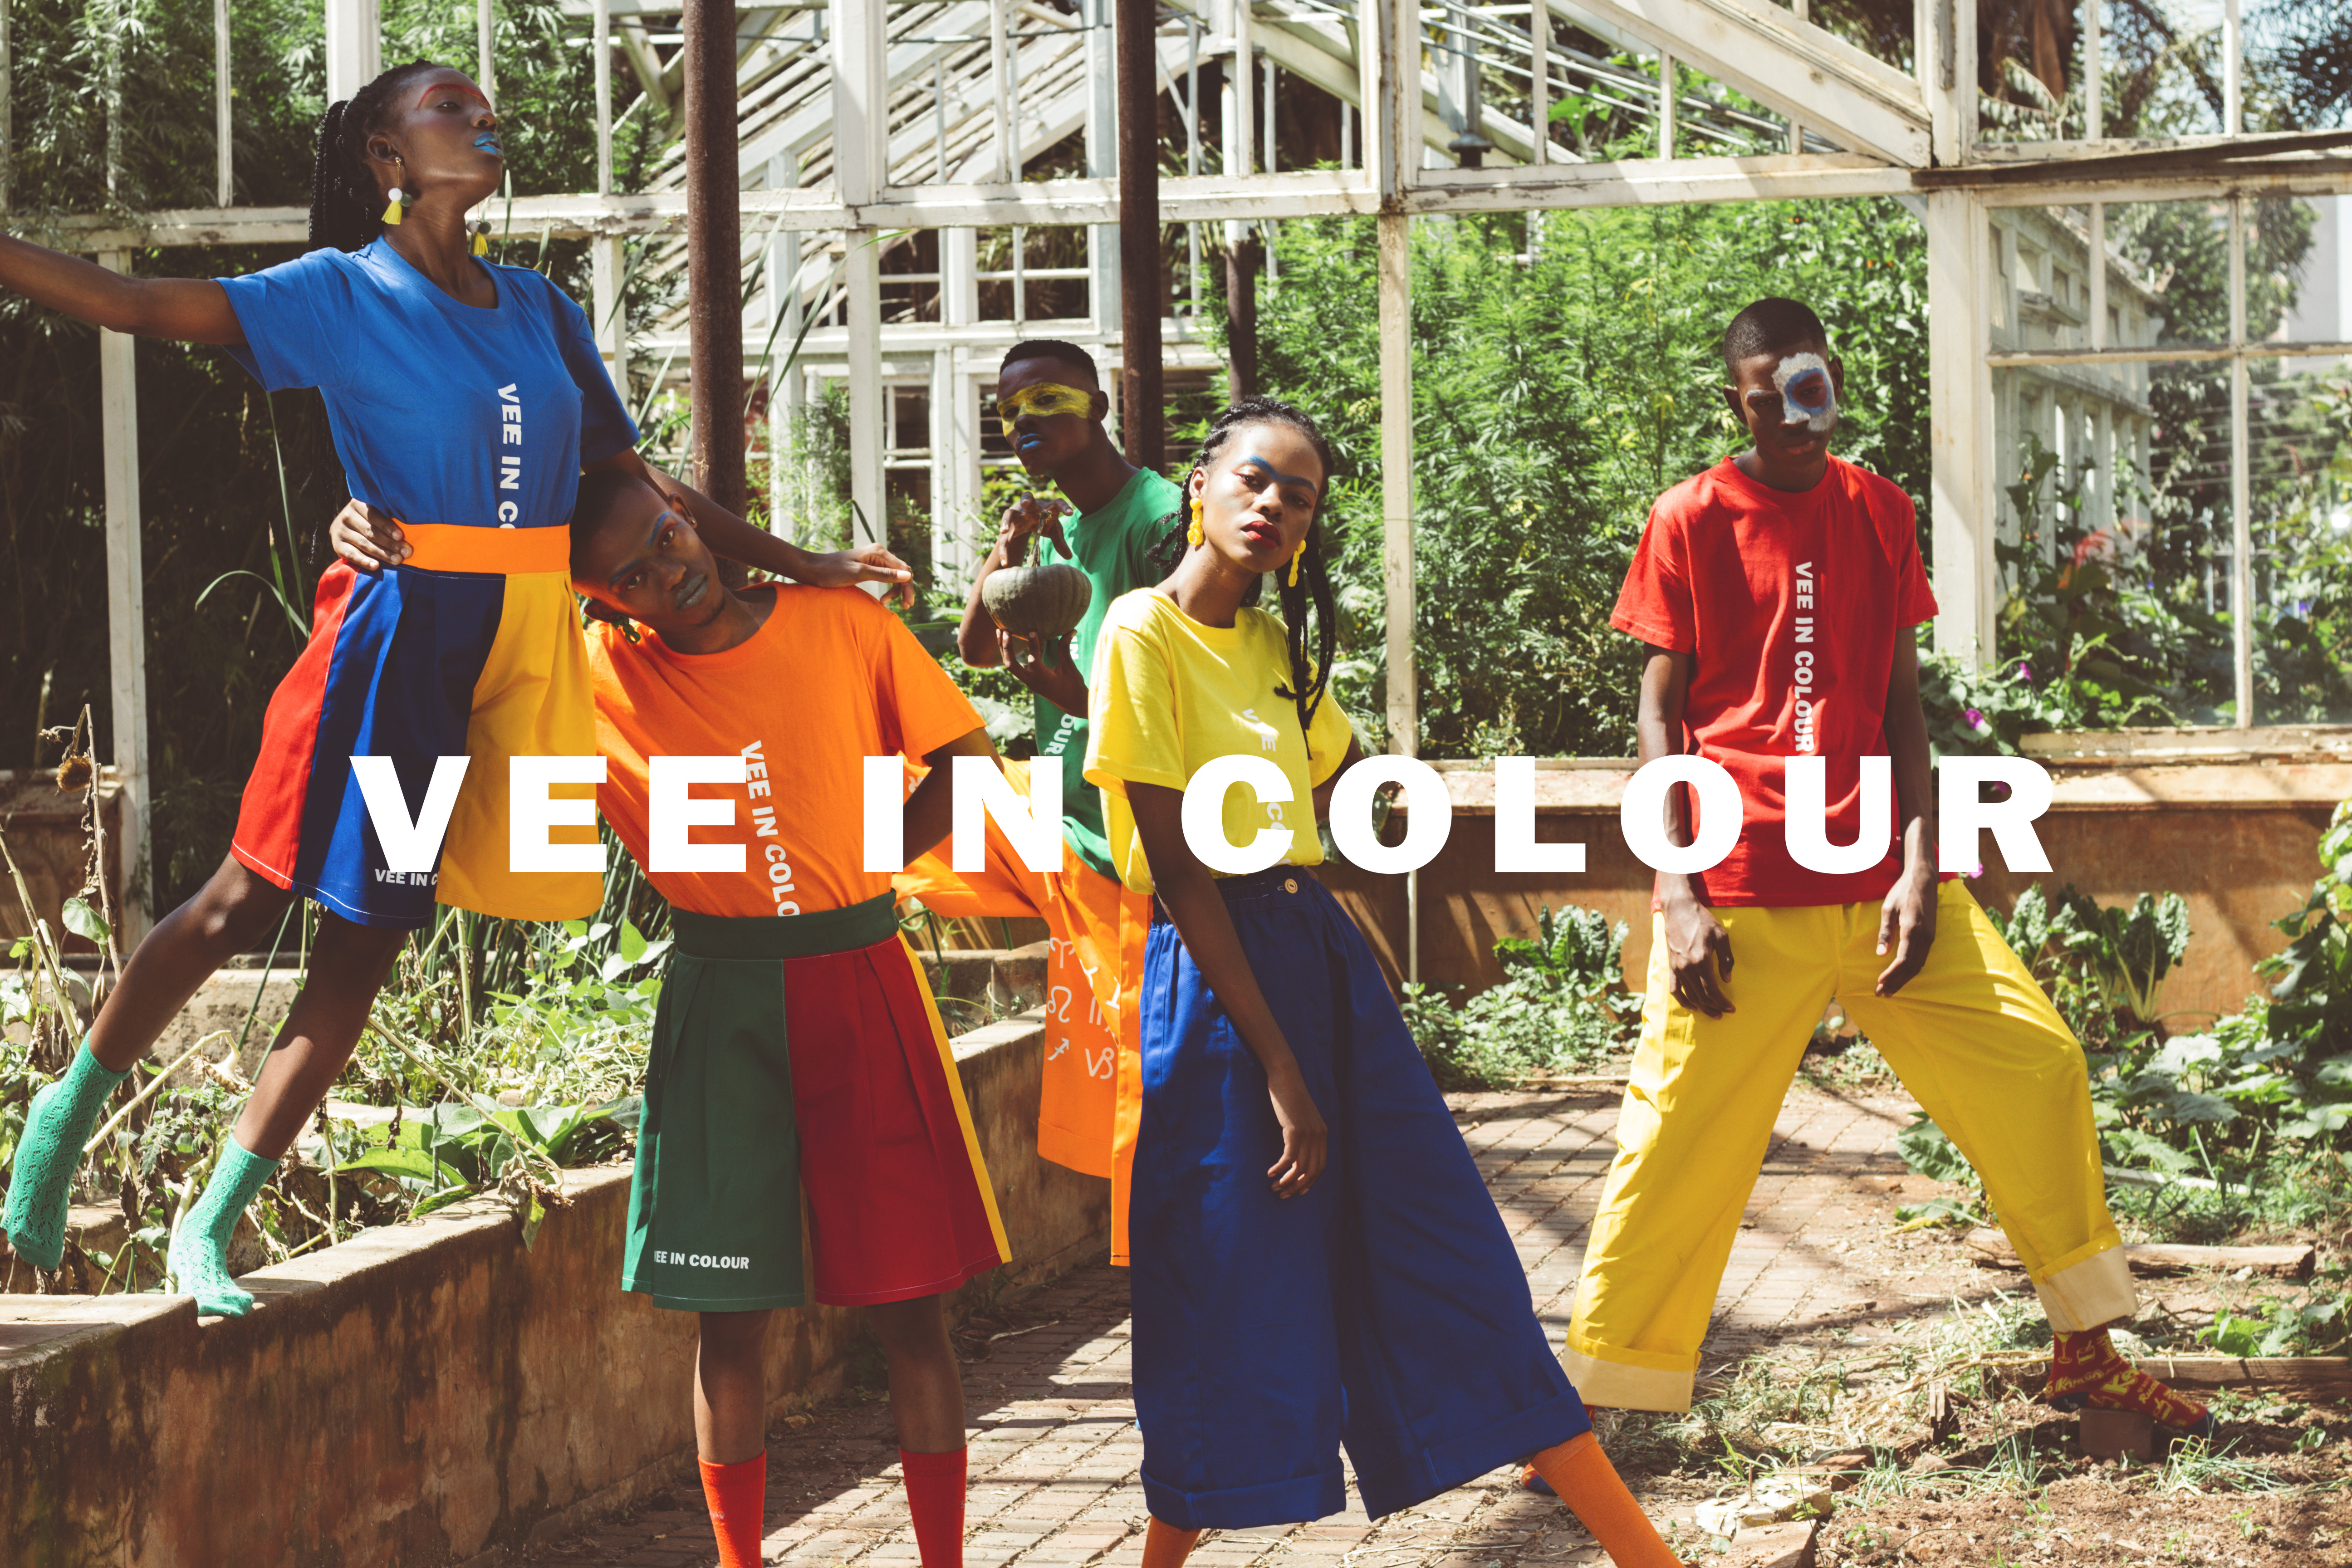 A group of people in a garden wearing Vee In Colour clothing